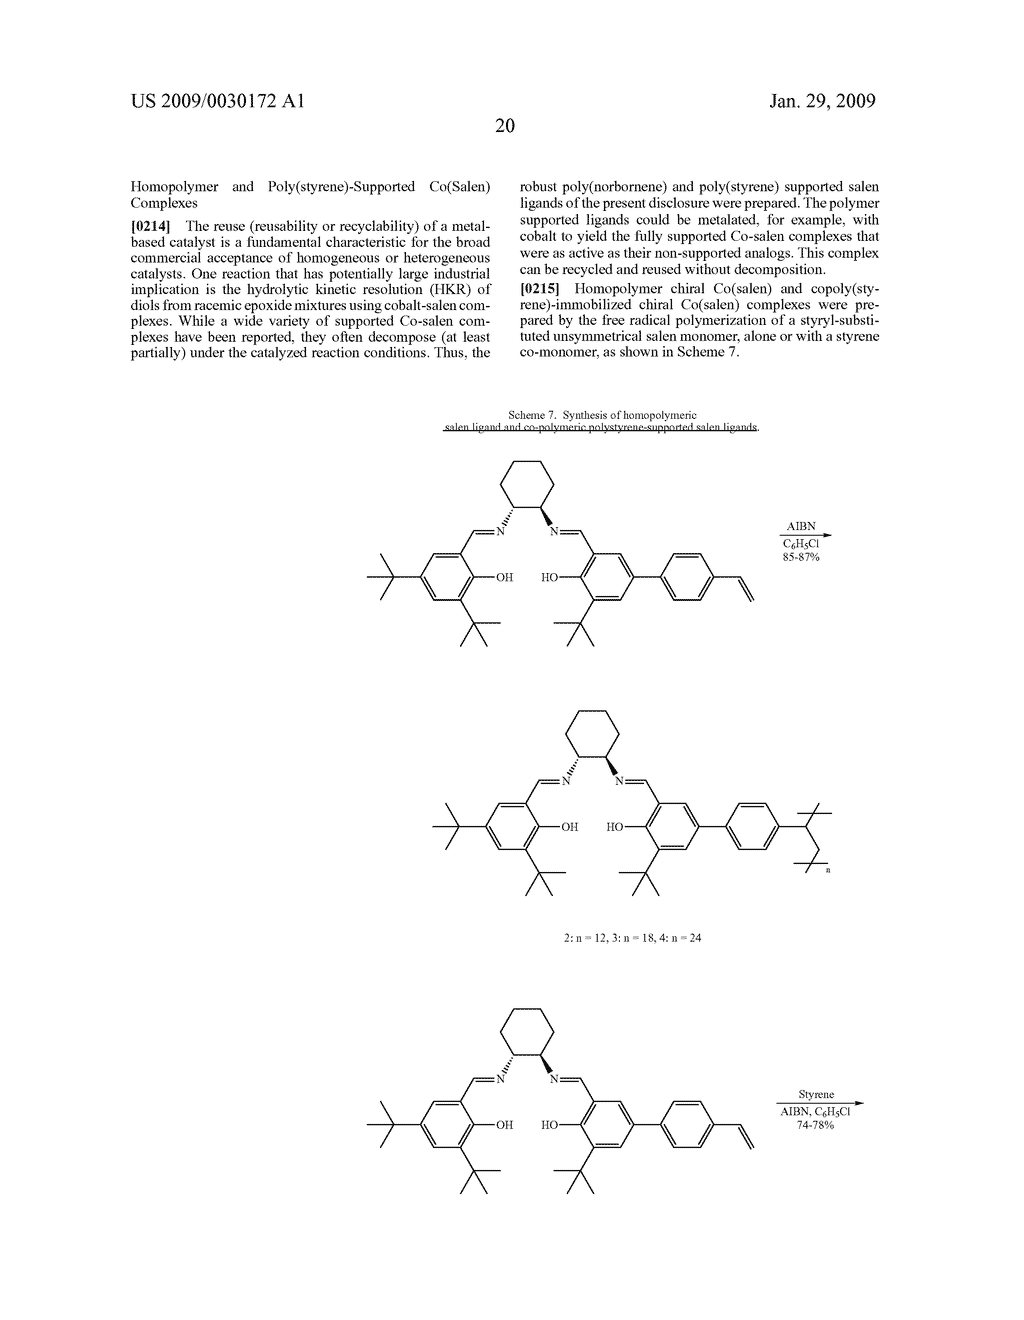 POLYMERIC SALEN COMPOUNDS AND METHODS THEREOF - diagram, schematic, and image 21